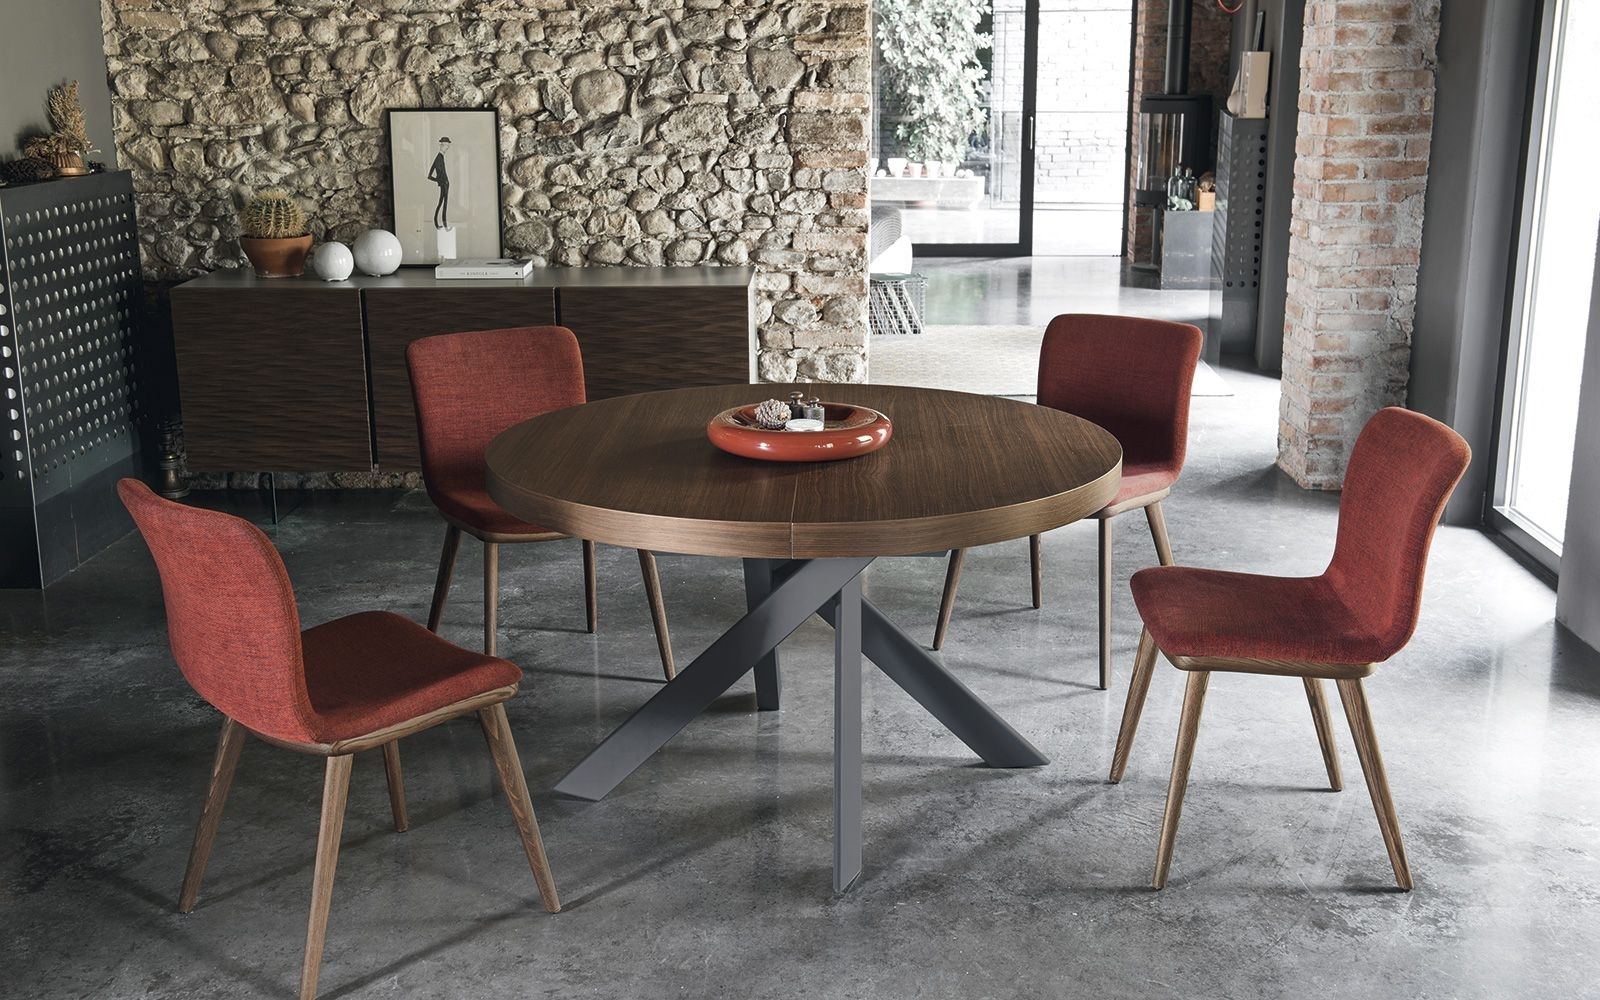 Design Dining Table Tivoli – Calligaris Cs/4100 | Dark Kitchens Intended For Recent Lassen 7 Piece Extension Rectangle Dining Sets (Image 3 of 20)